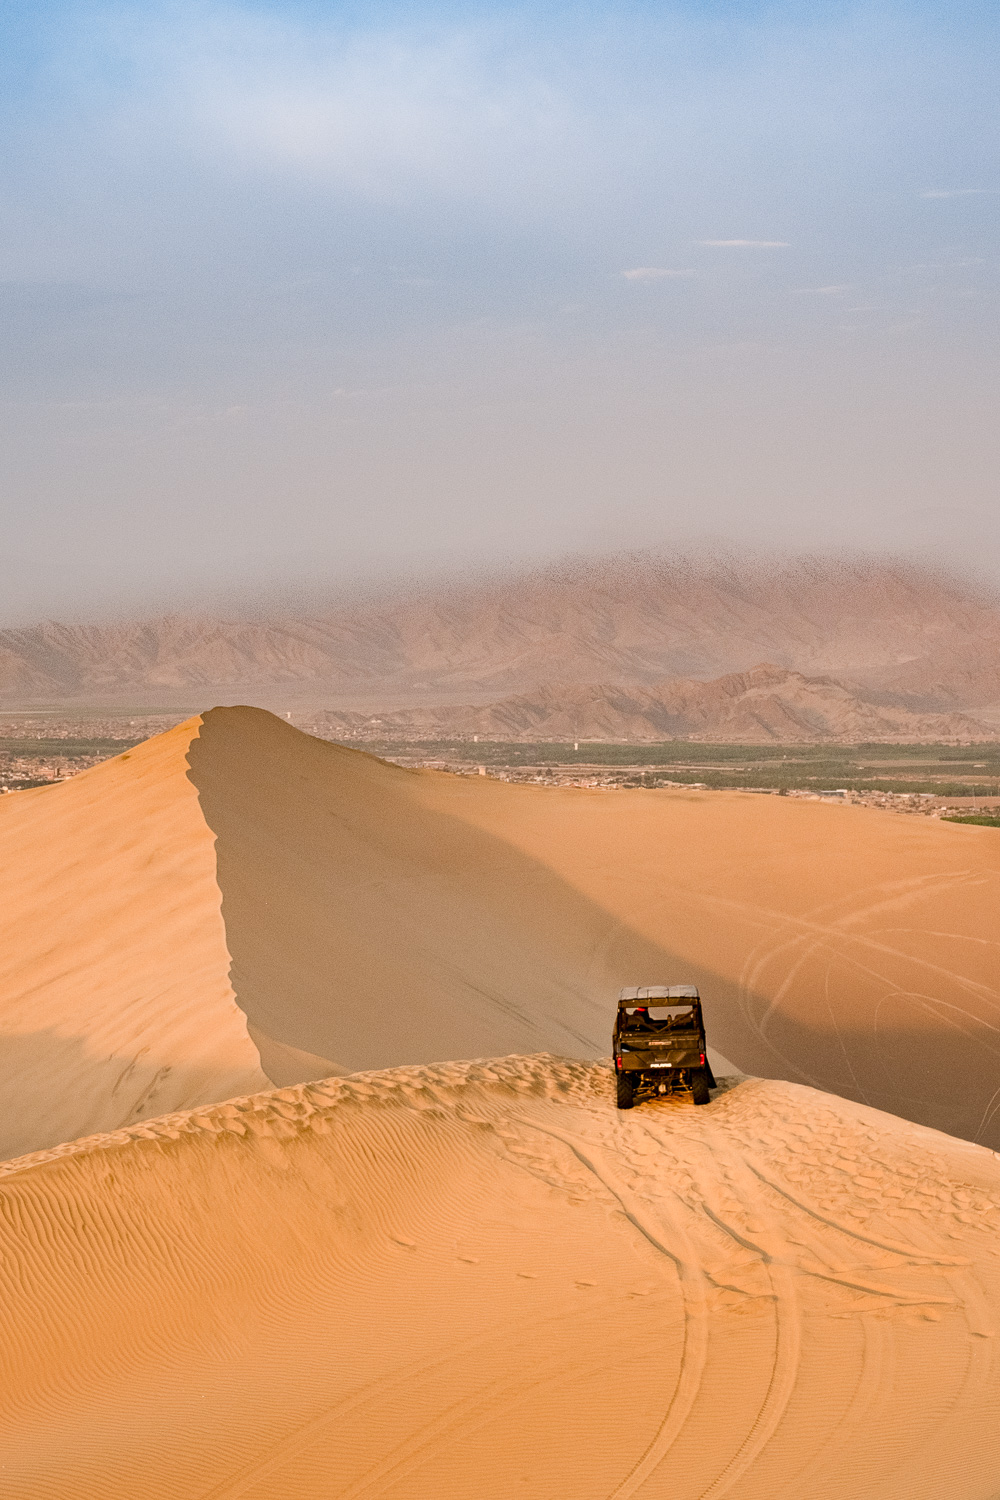 """Dune buggy in Ica, Peru. Travel photography and guide by © Natasha Lequepeys for """"And Then I Met Yoko"""". #huacachina #photoblog #travelblog #landscapephotography #fujifilm #blogger"""